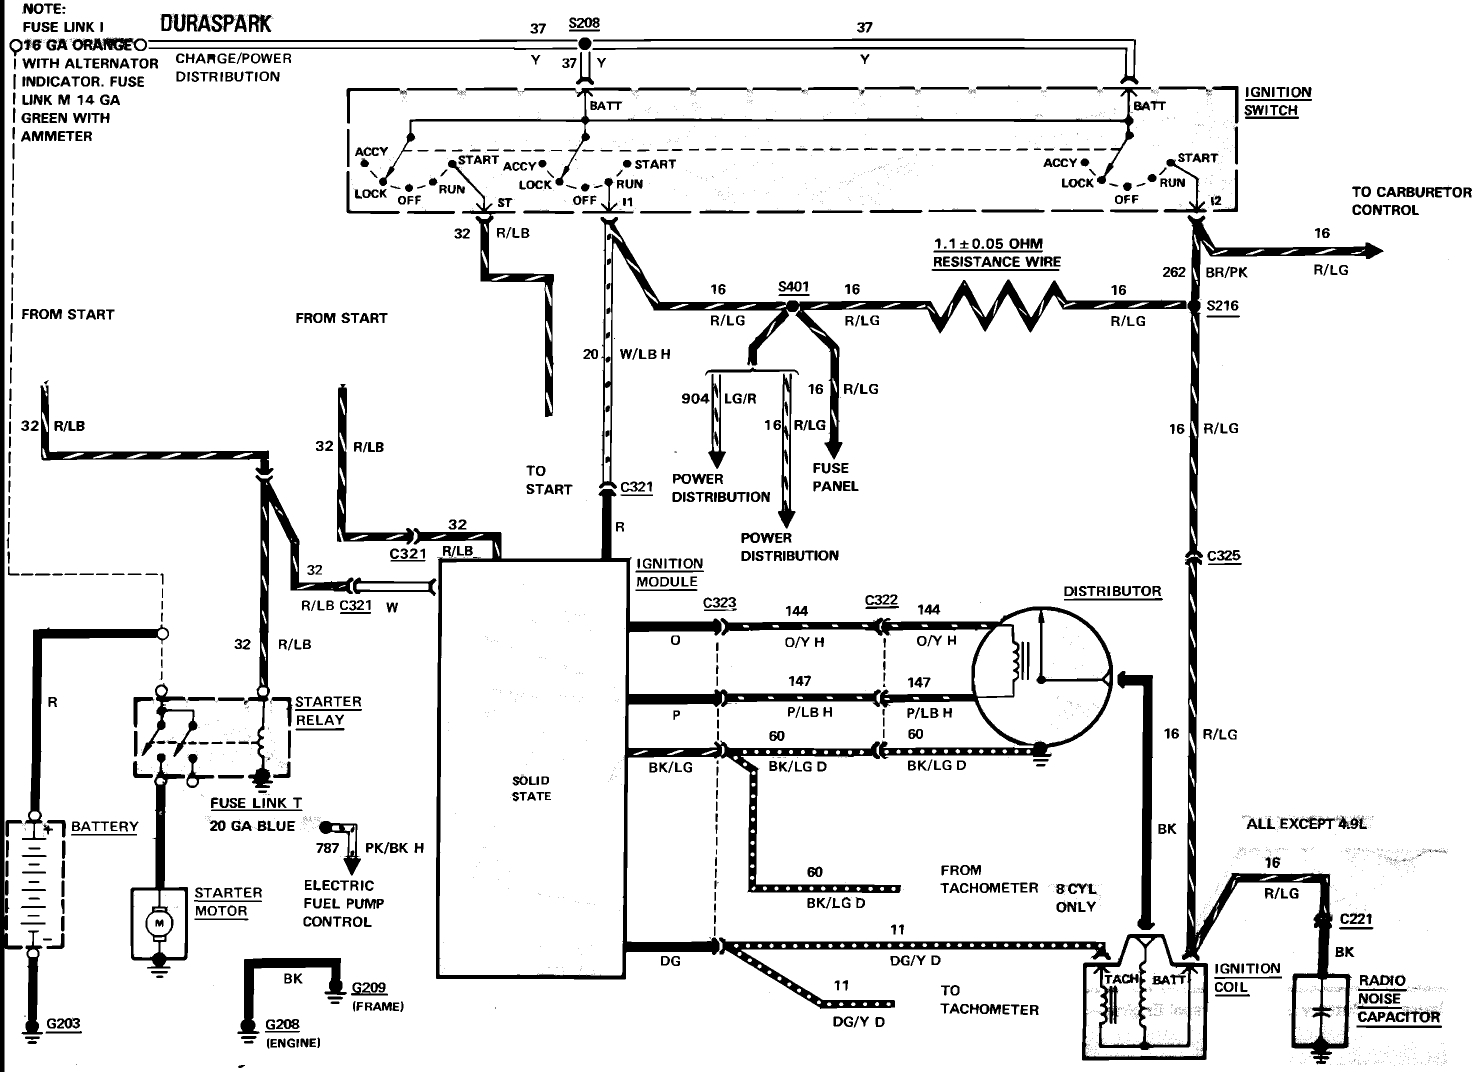 wiring diagram 1988 ford 1989 ford f150 ignition wiring diagram | free wiring diagram #7